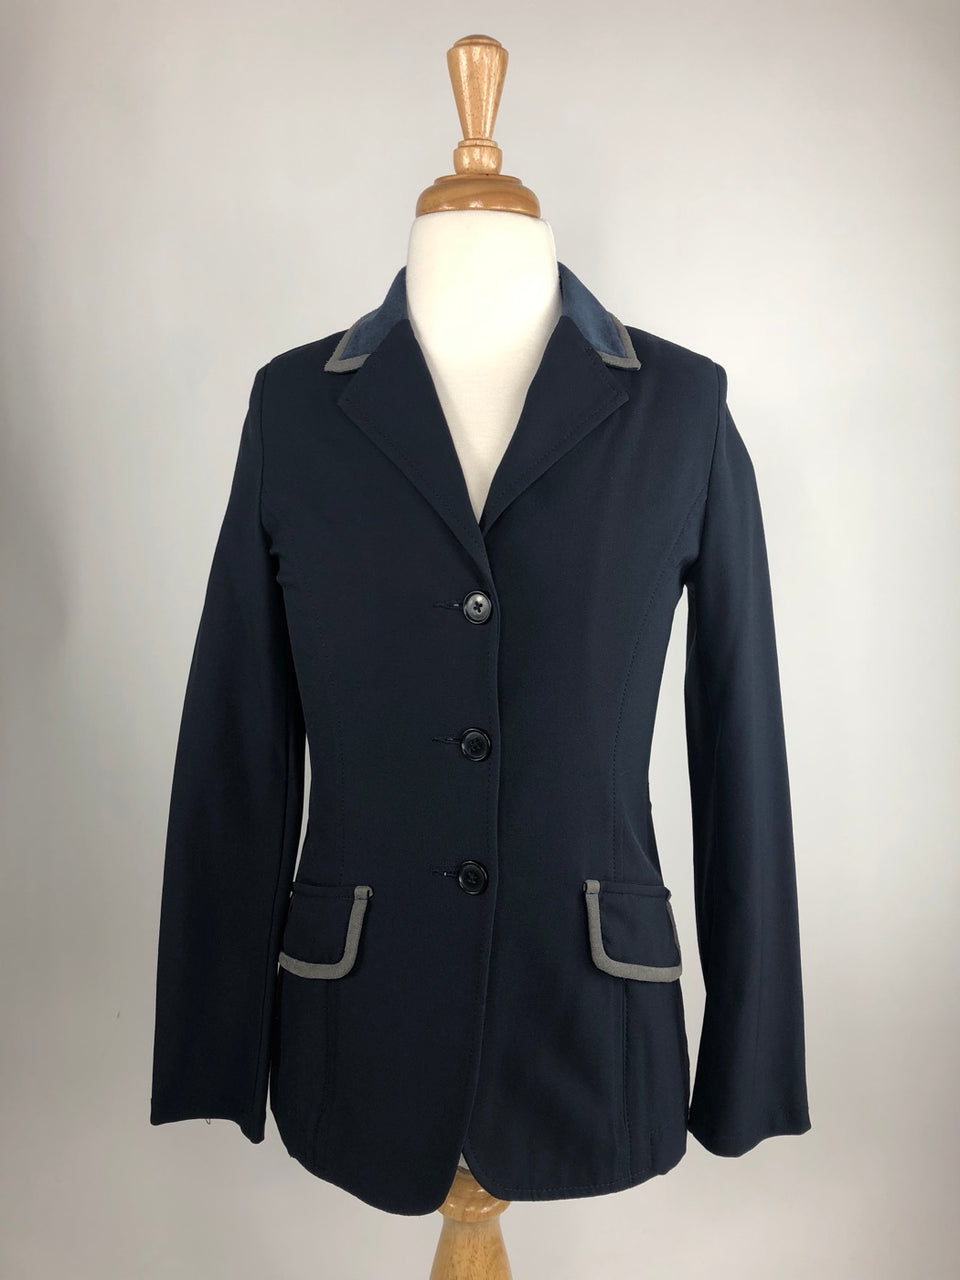 Charles Ancona Show Jacket in Navy w/Charcoal Trim - Children's 12 | M